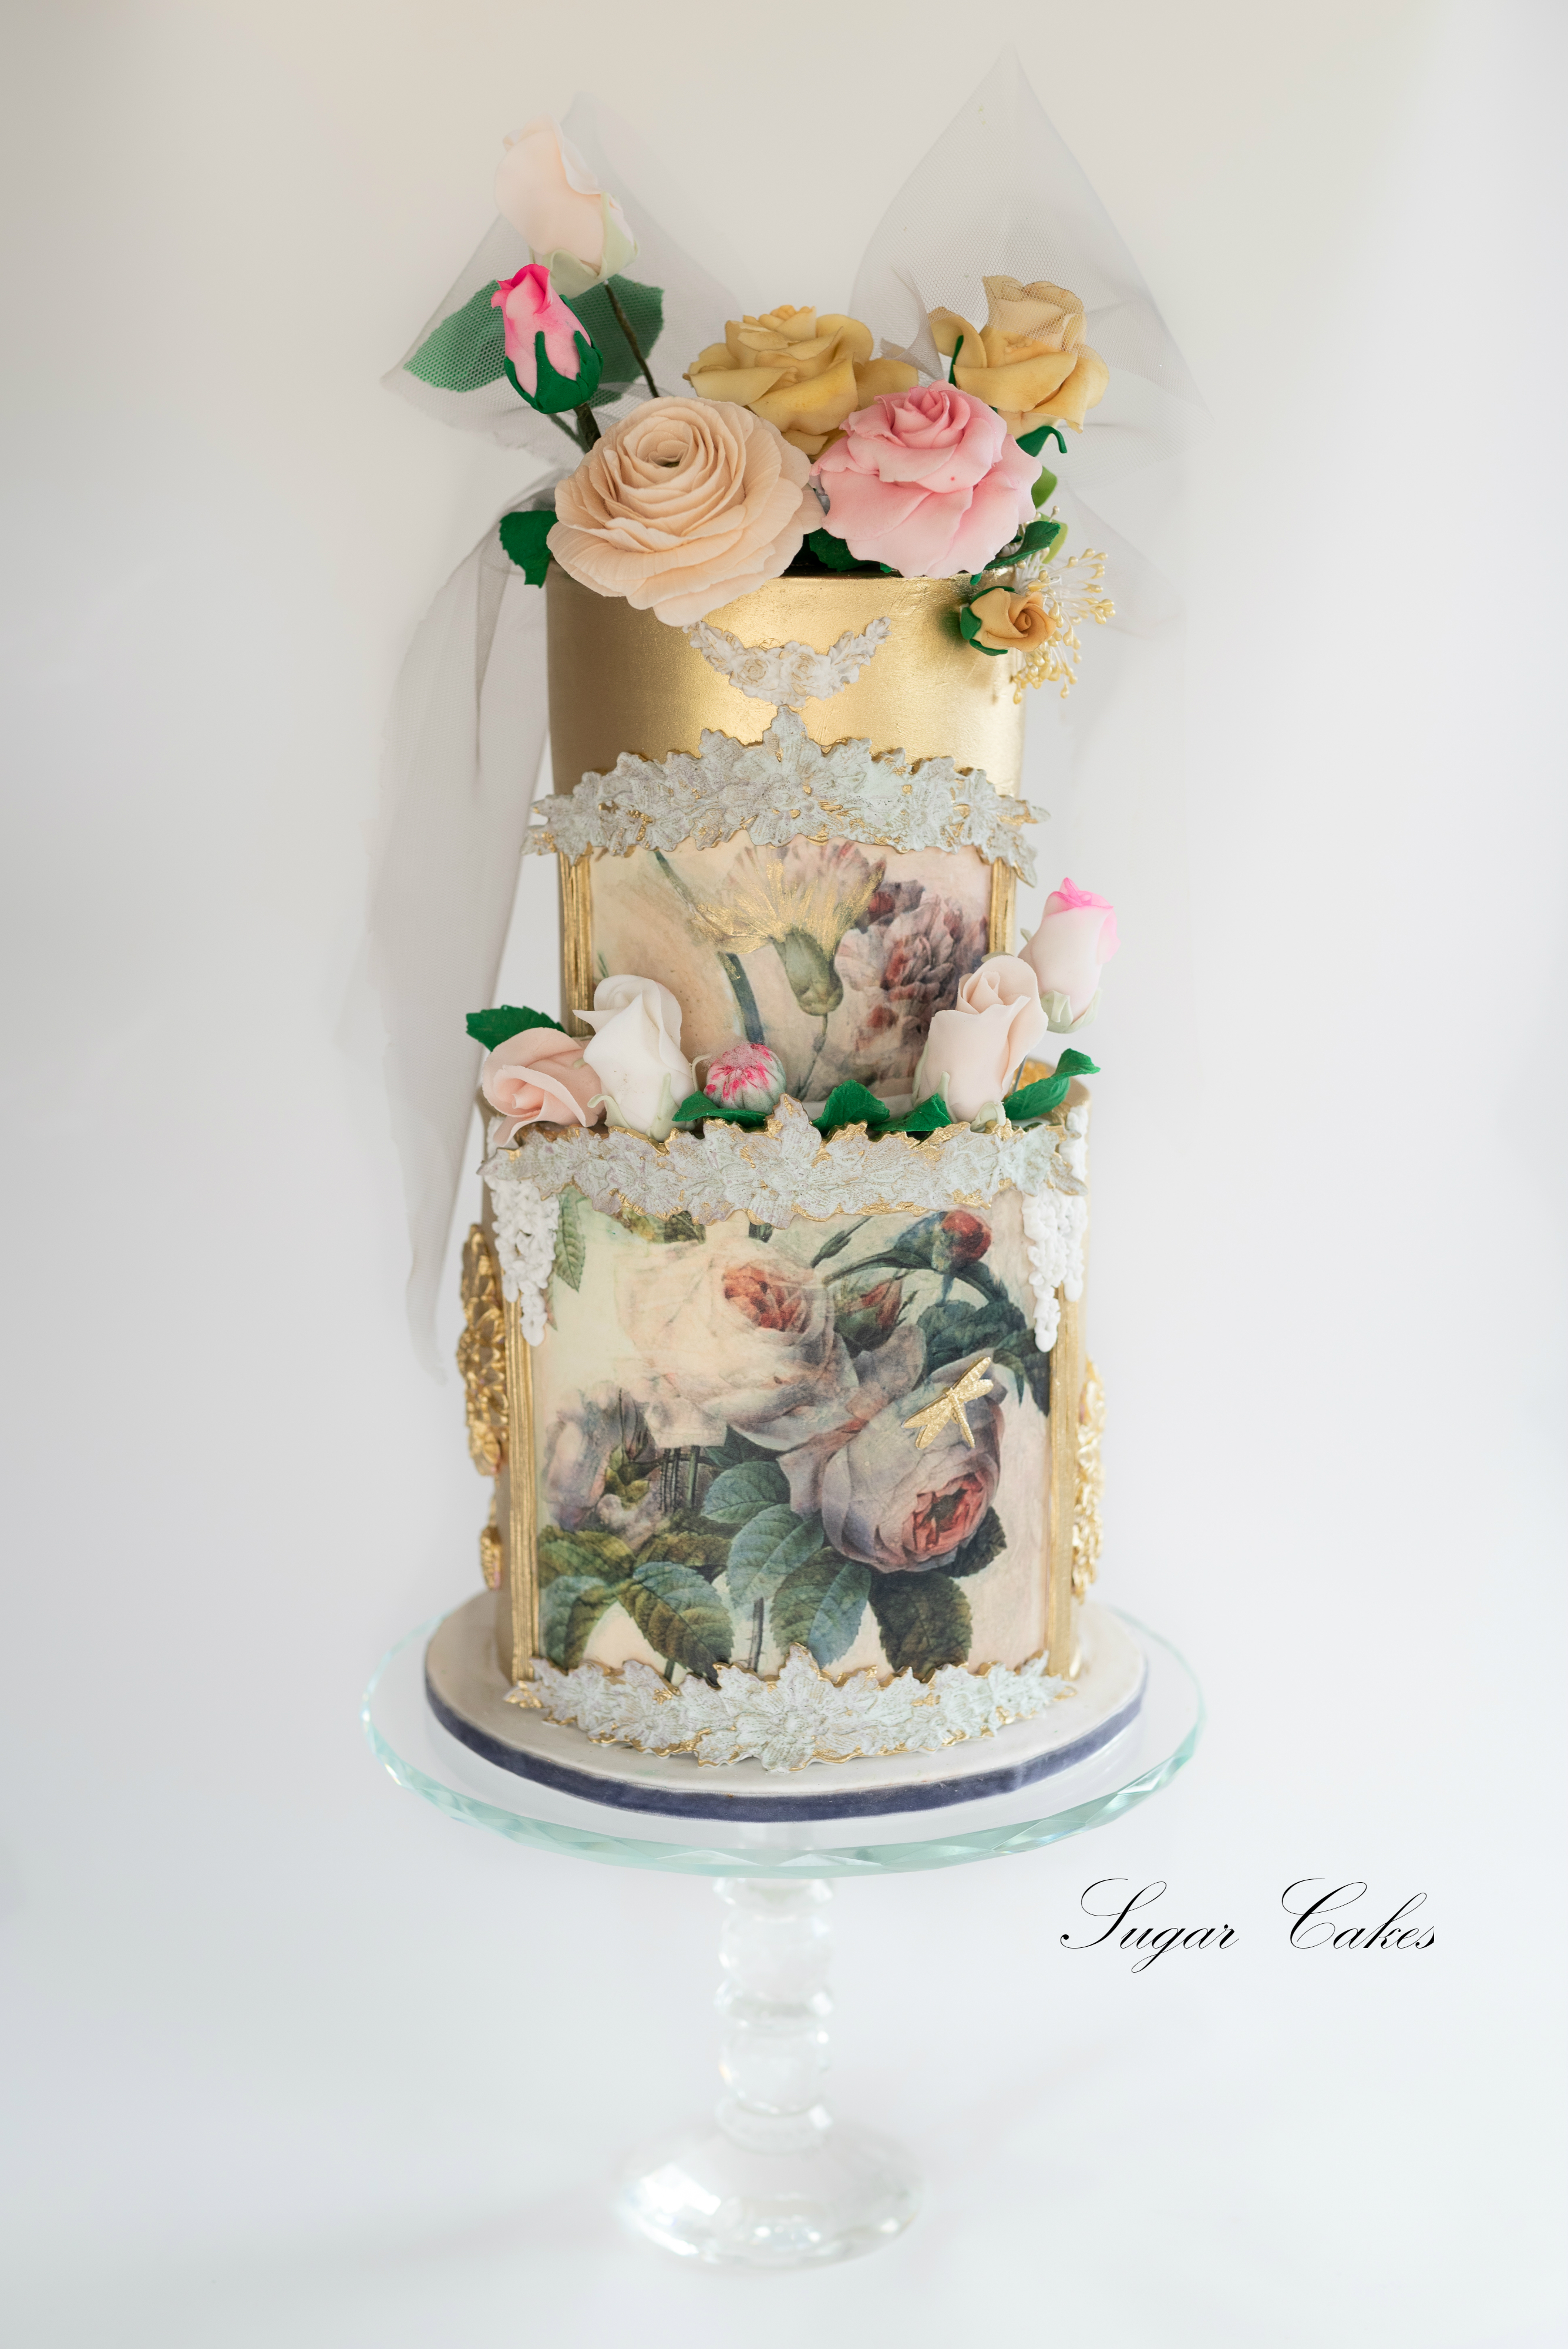 gold textured art nouveau fondant wedding cake